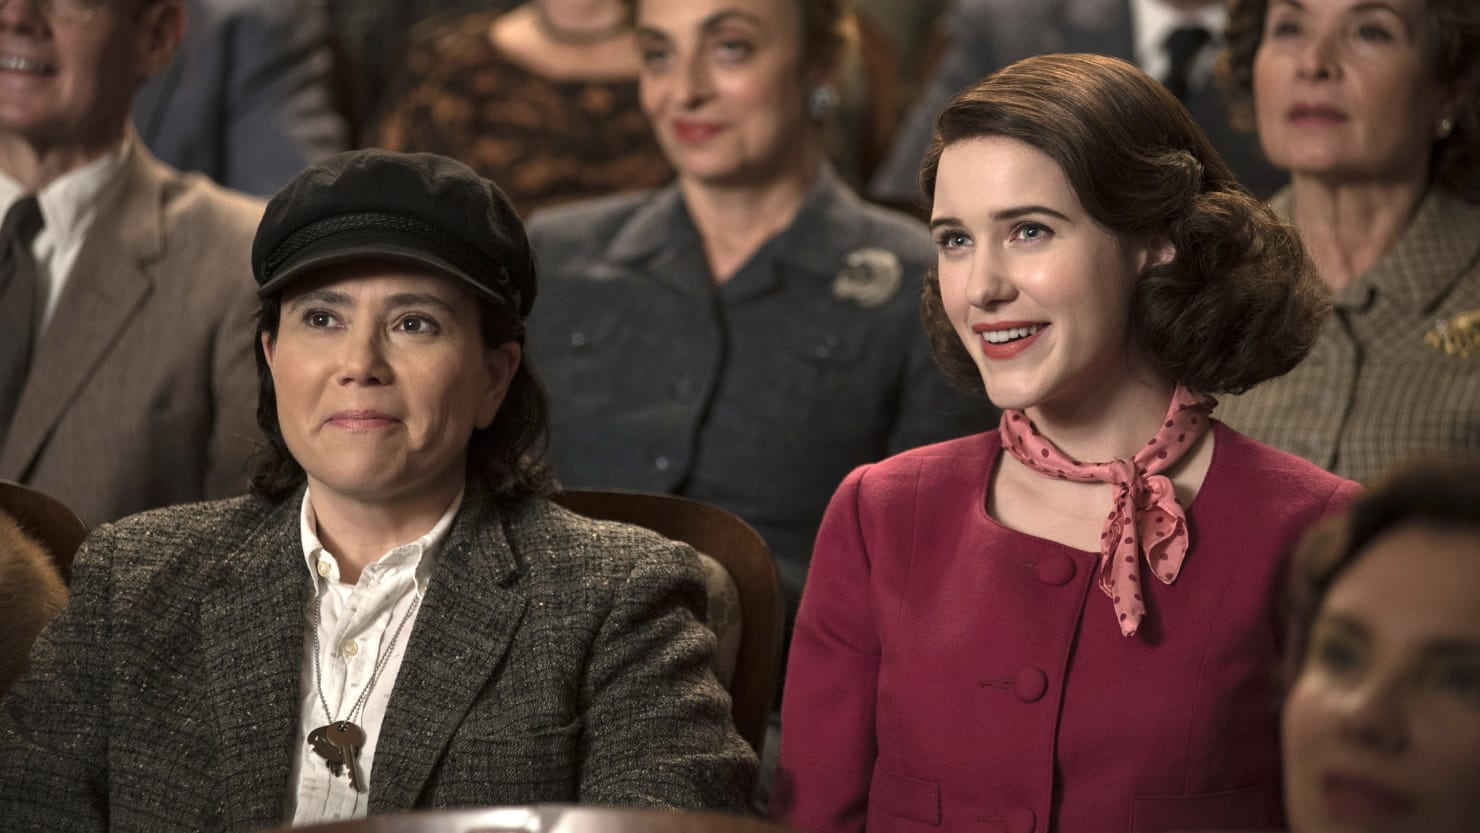 The Marvelous Mrs. Maisel Season 3 update